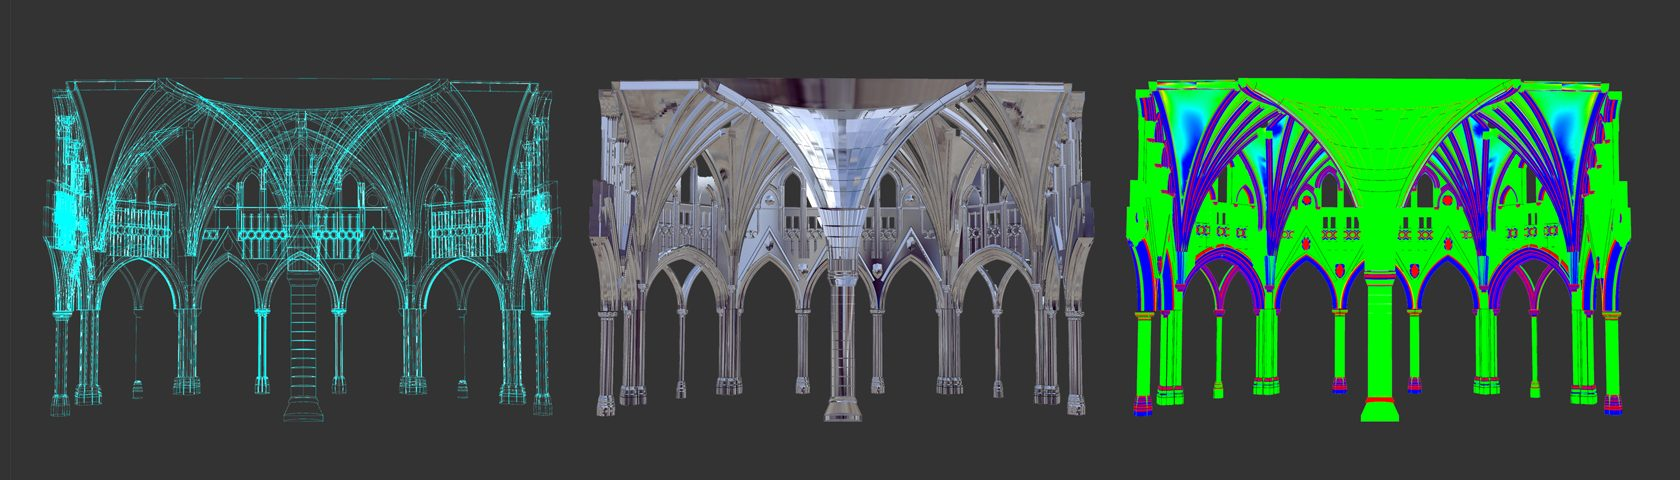 Three-D renderings of archways at Canada's Parliament Buildings.